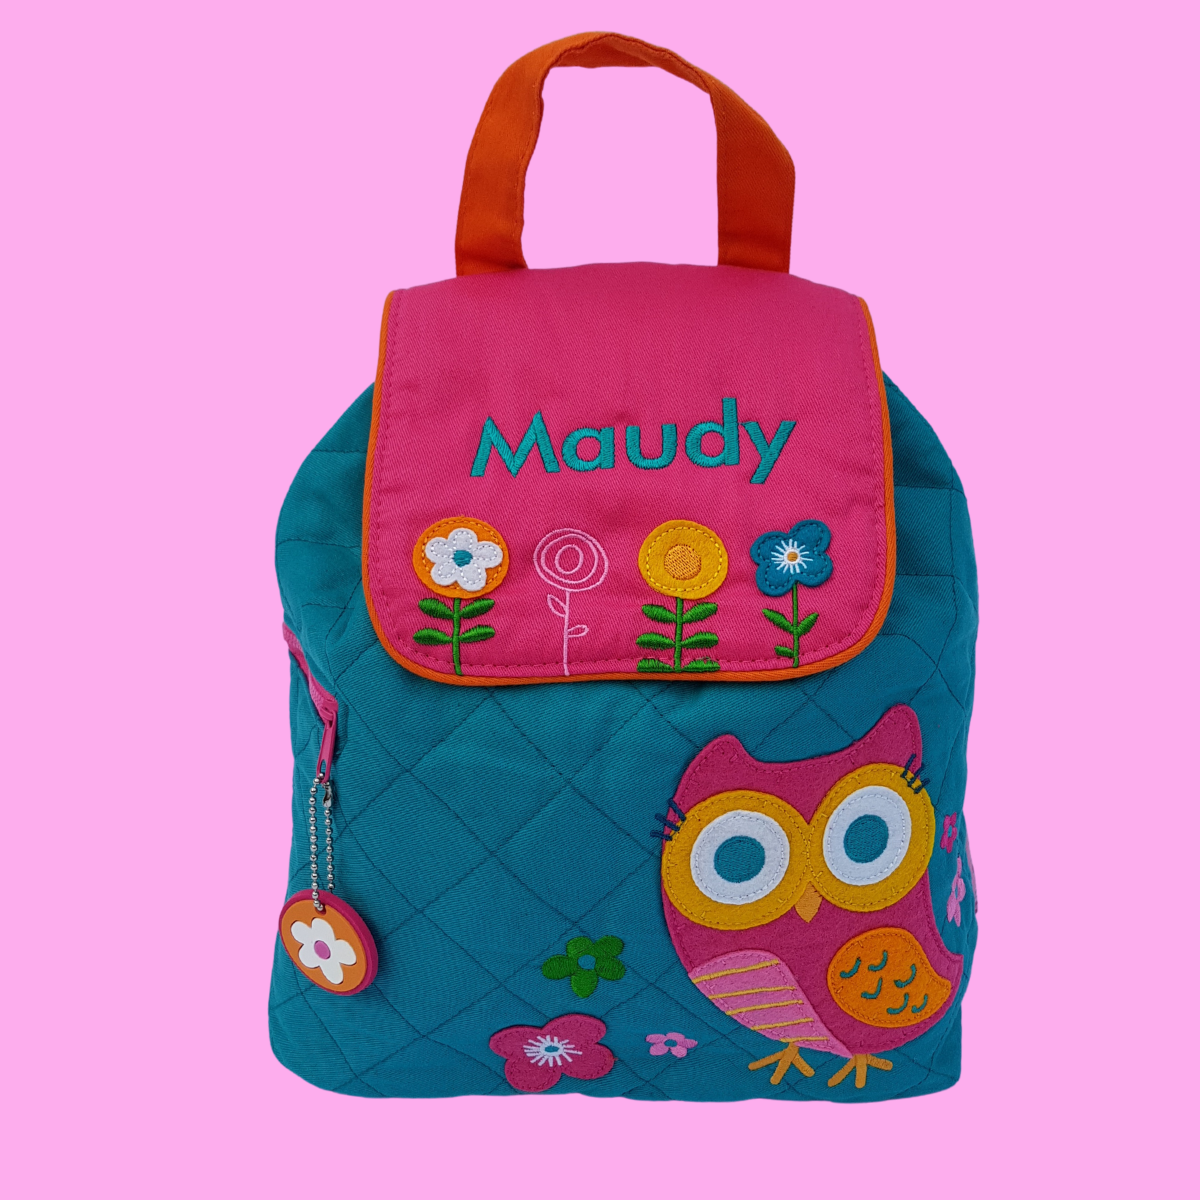 Personalised Stephen Joseph Owl child's backpack. Made from quilted torquoise fabric with a bright owl design on the front. The opening flap of the bag which is fuschia pink has applique flowers on it and it can be embroidered with a name of your choice.